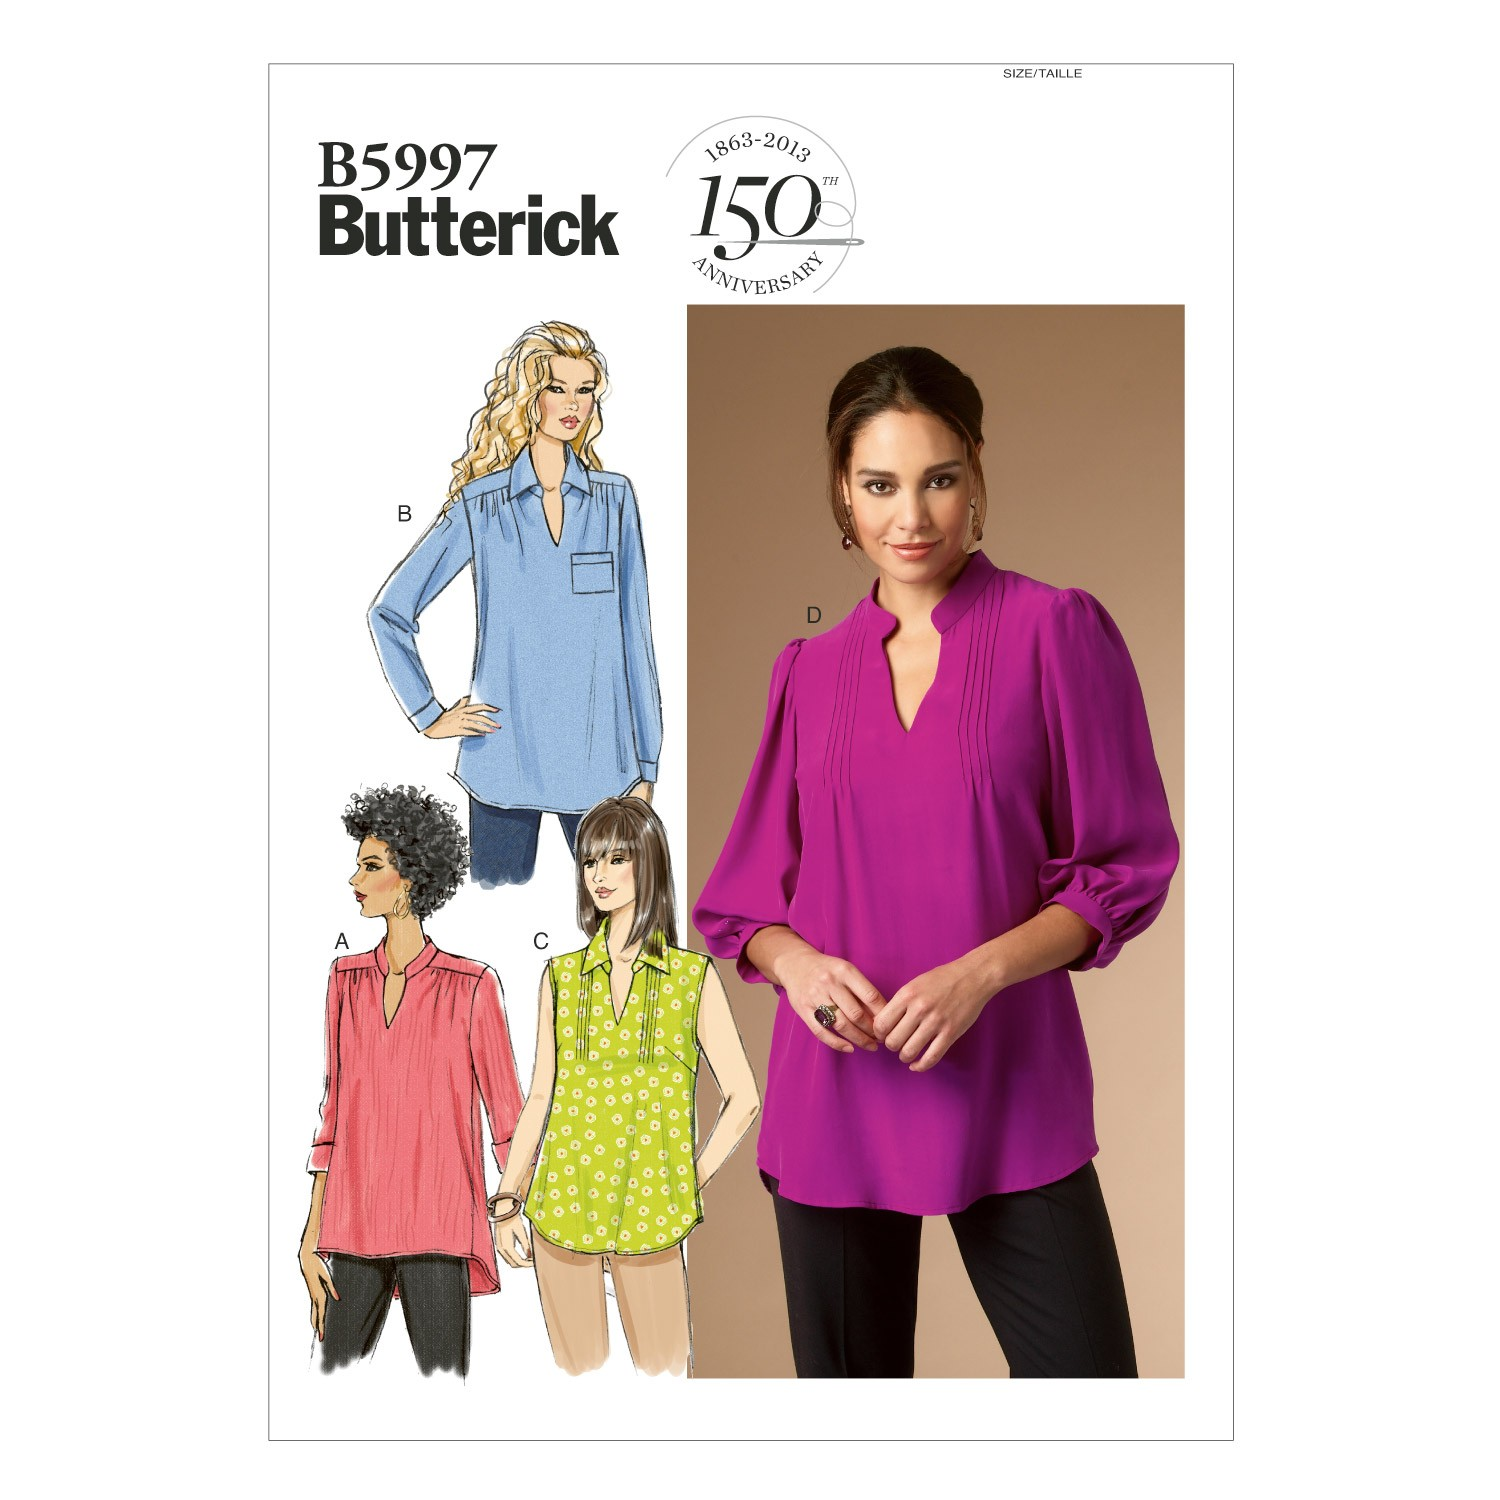 Butterick Sewing Pattern 5997 Misses' Loose Top